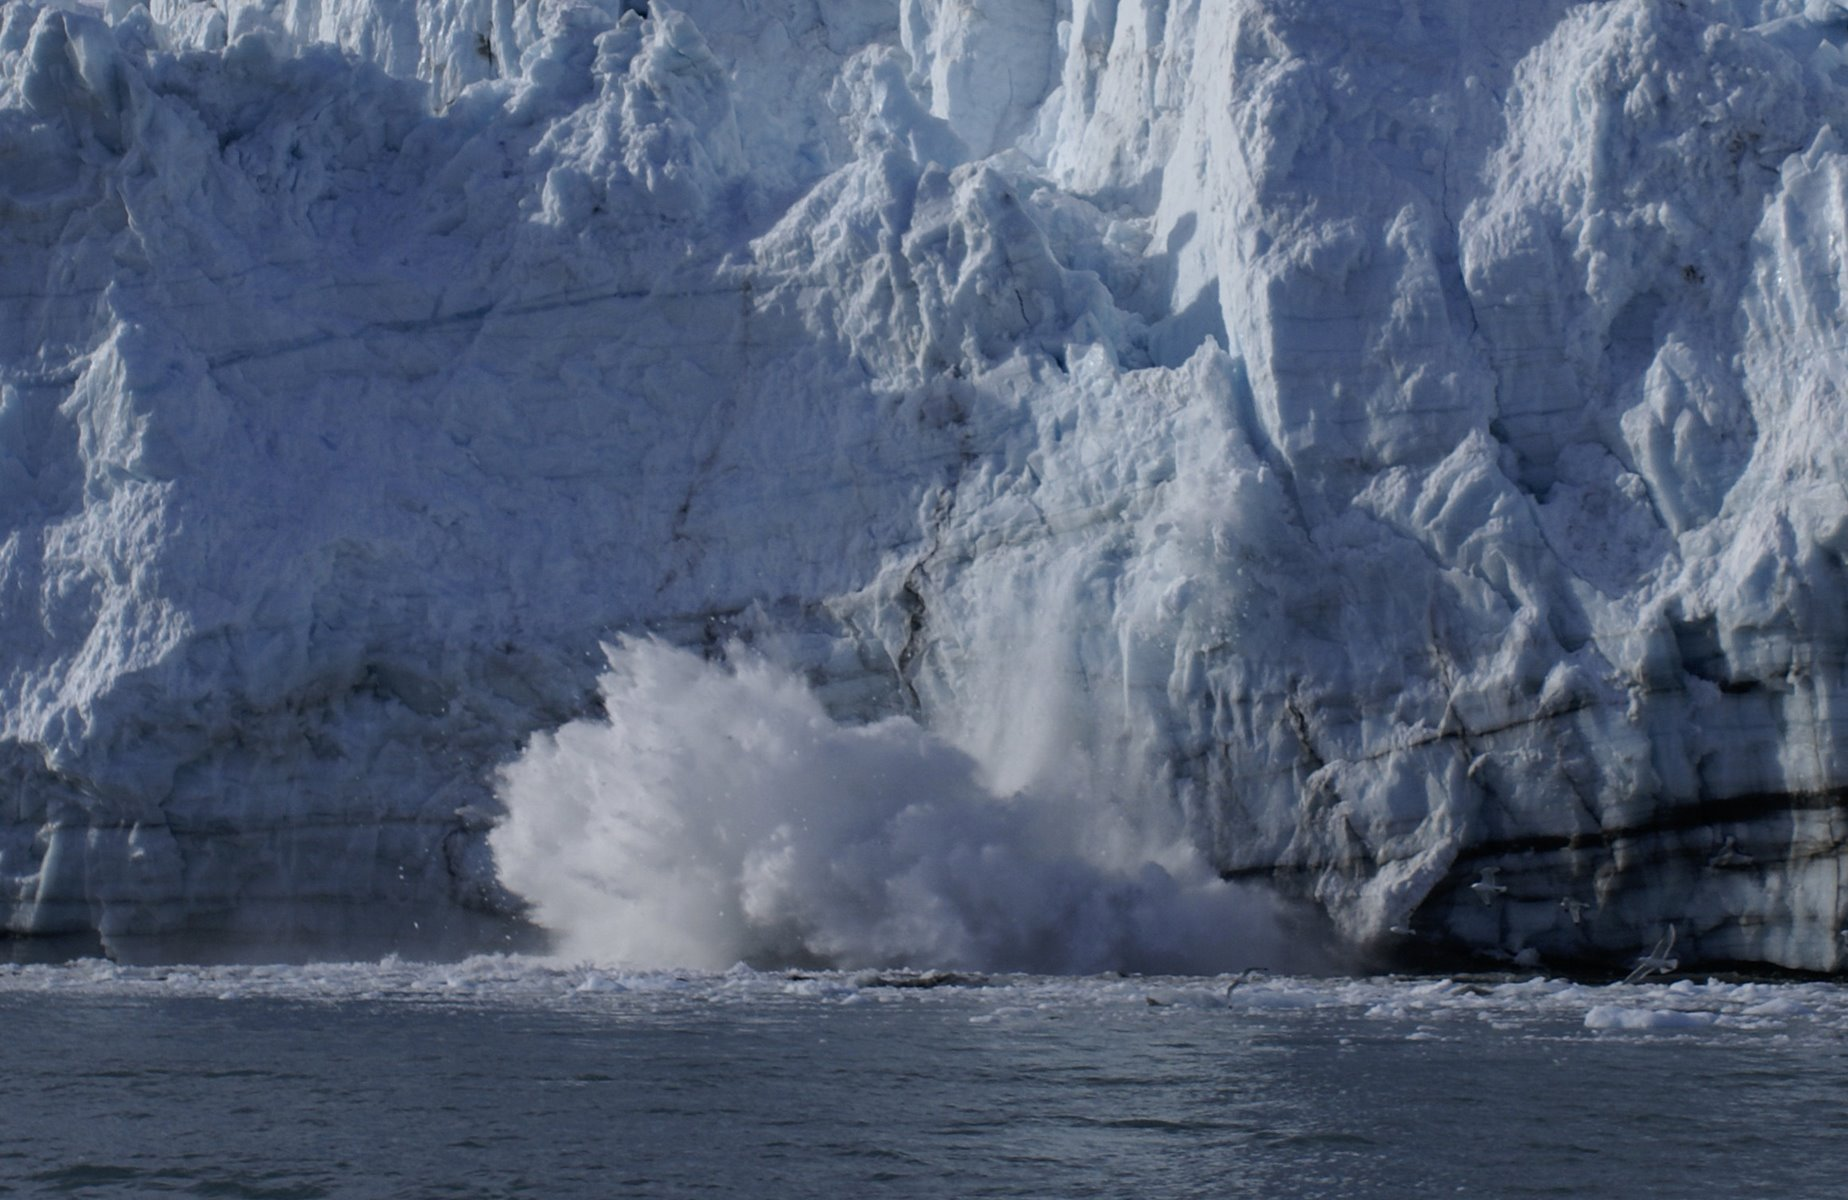 Calving glacier sequence, photo 5